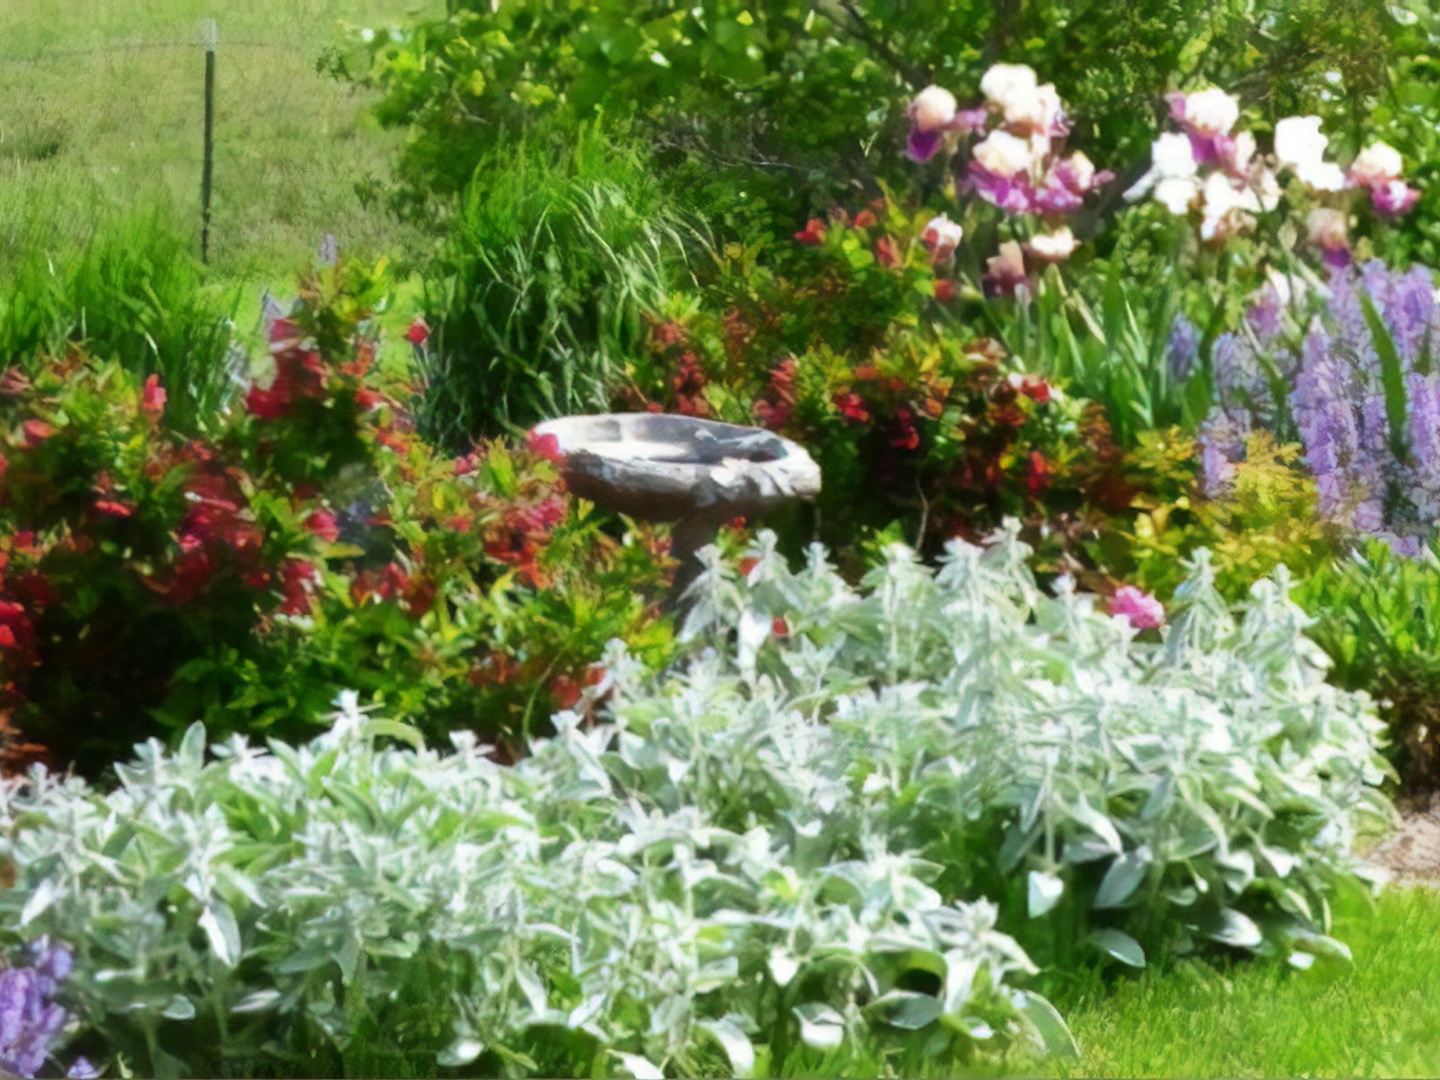 A close up of a flower garden at Longview Farms Bed & Breakfast Carriage House.